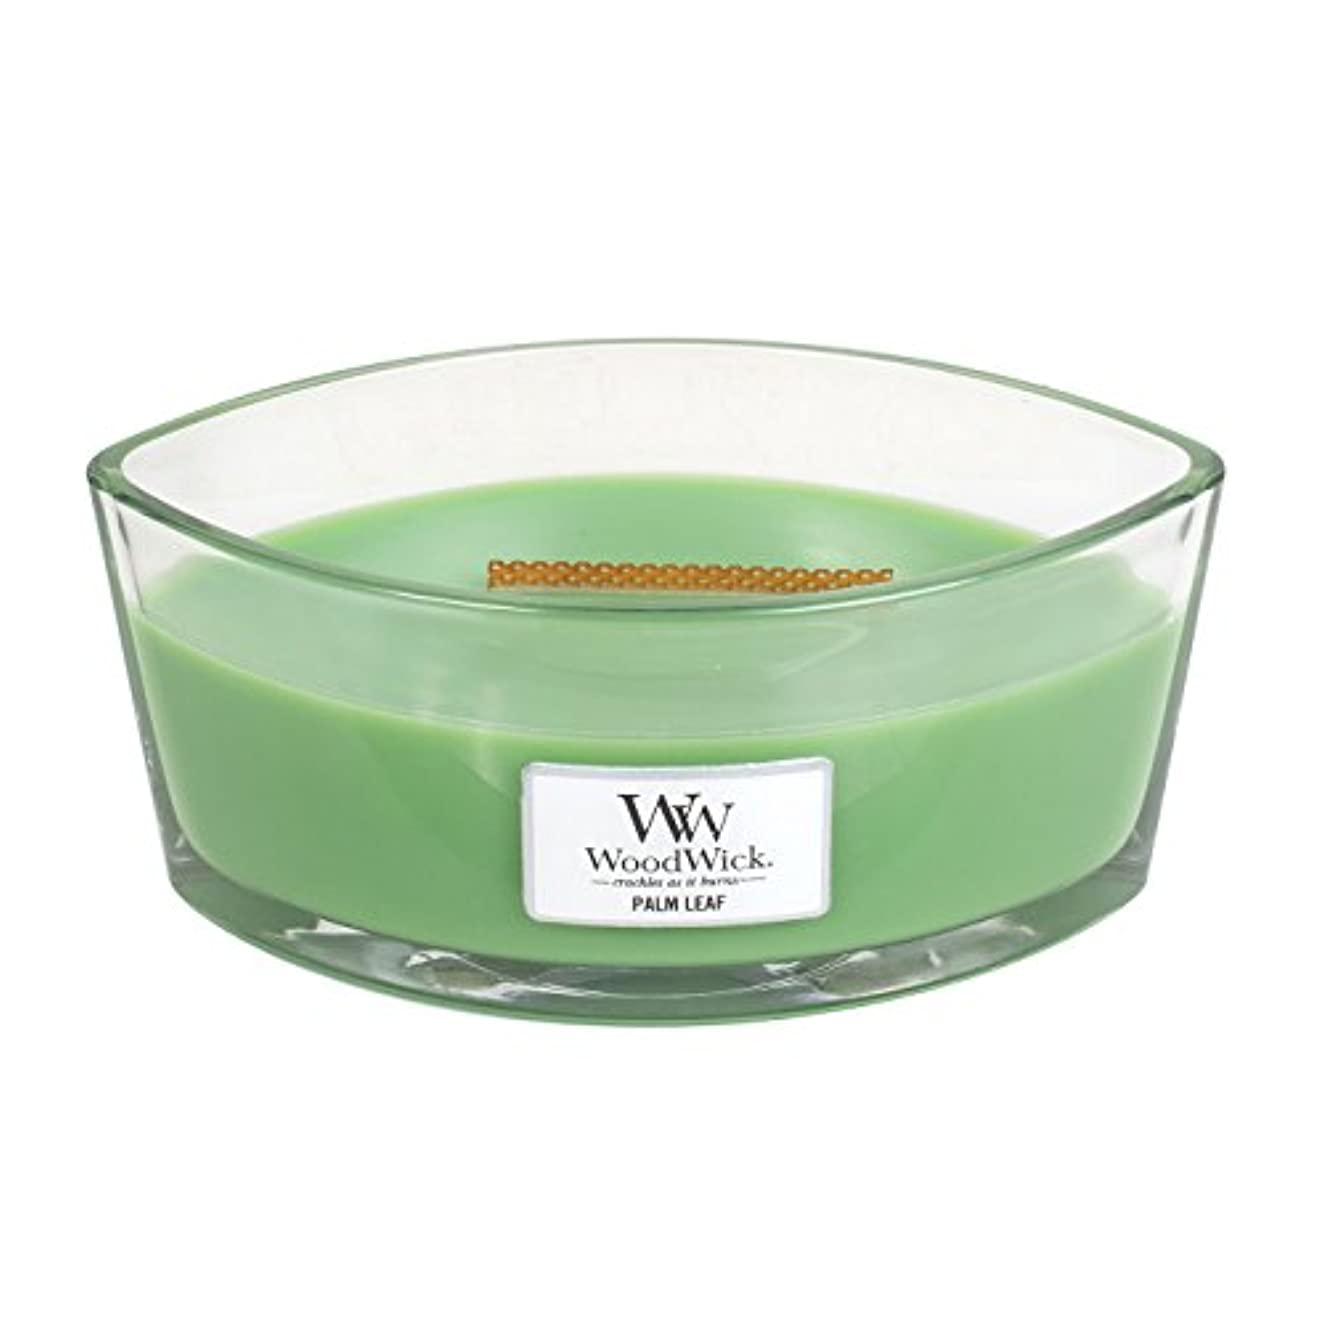 分離するアンプ不安定Woodwick Palm Leaf , Highly Scented Candle、楕円ガラスJar with元HearthWick Flame , Large 7-inch、16オンス